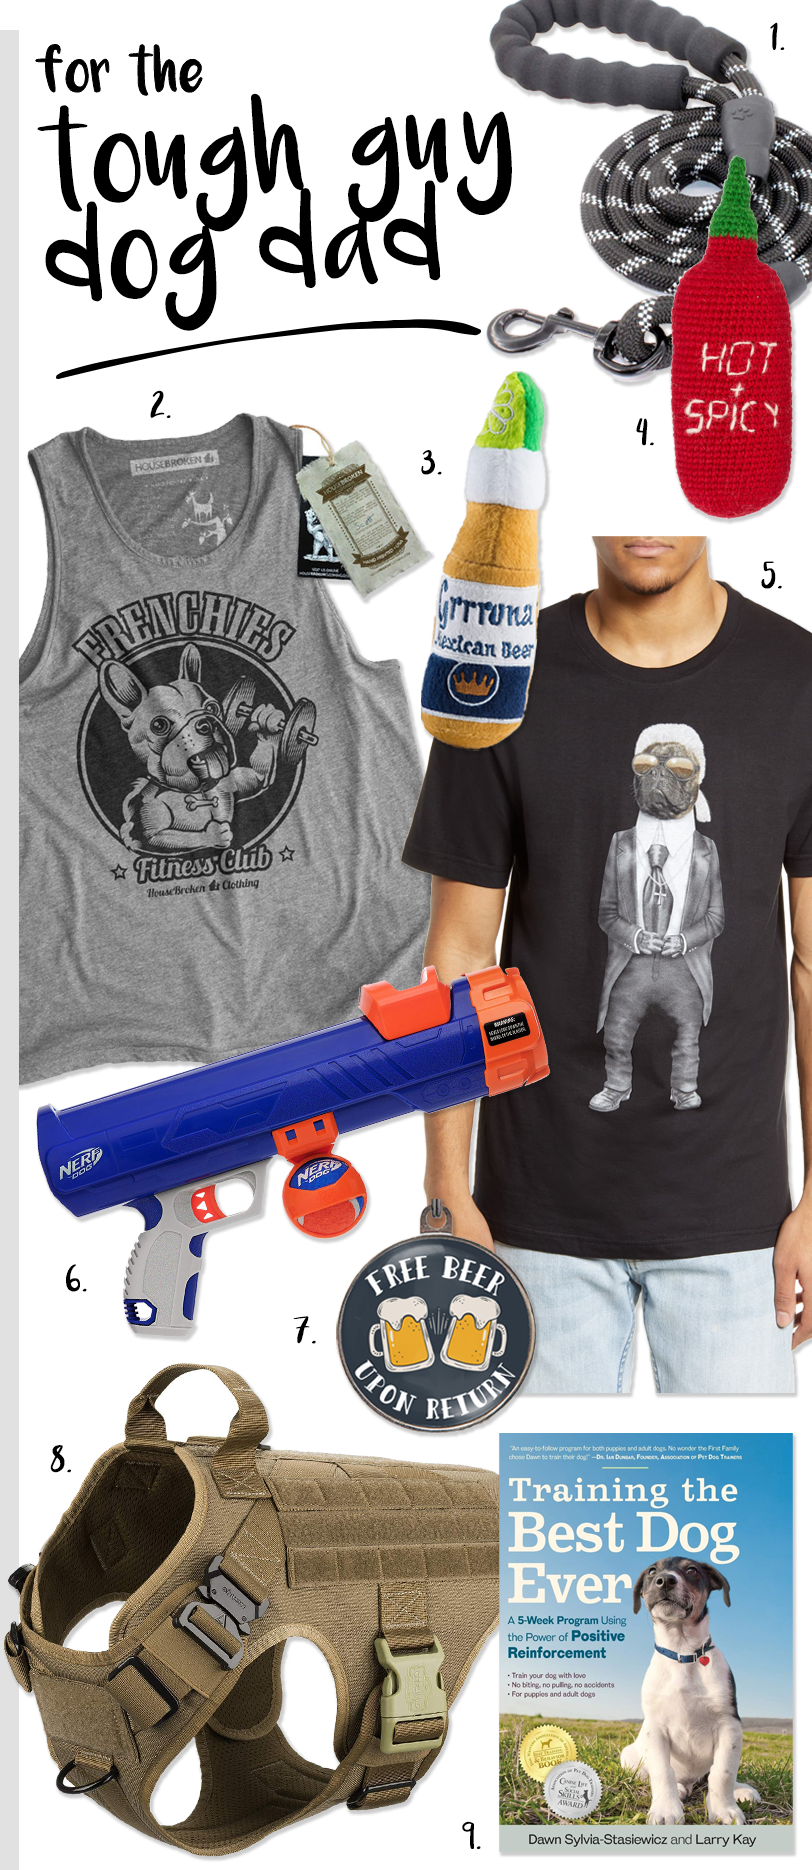 Ultimate Dog Parent Gift Guide – Gifts for 8 Types of Dog Parent! heydjangles.com - Gift ideas for the tough guy dog dad. #dogdadgifts